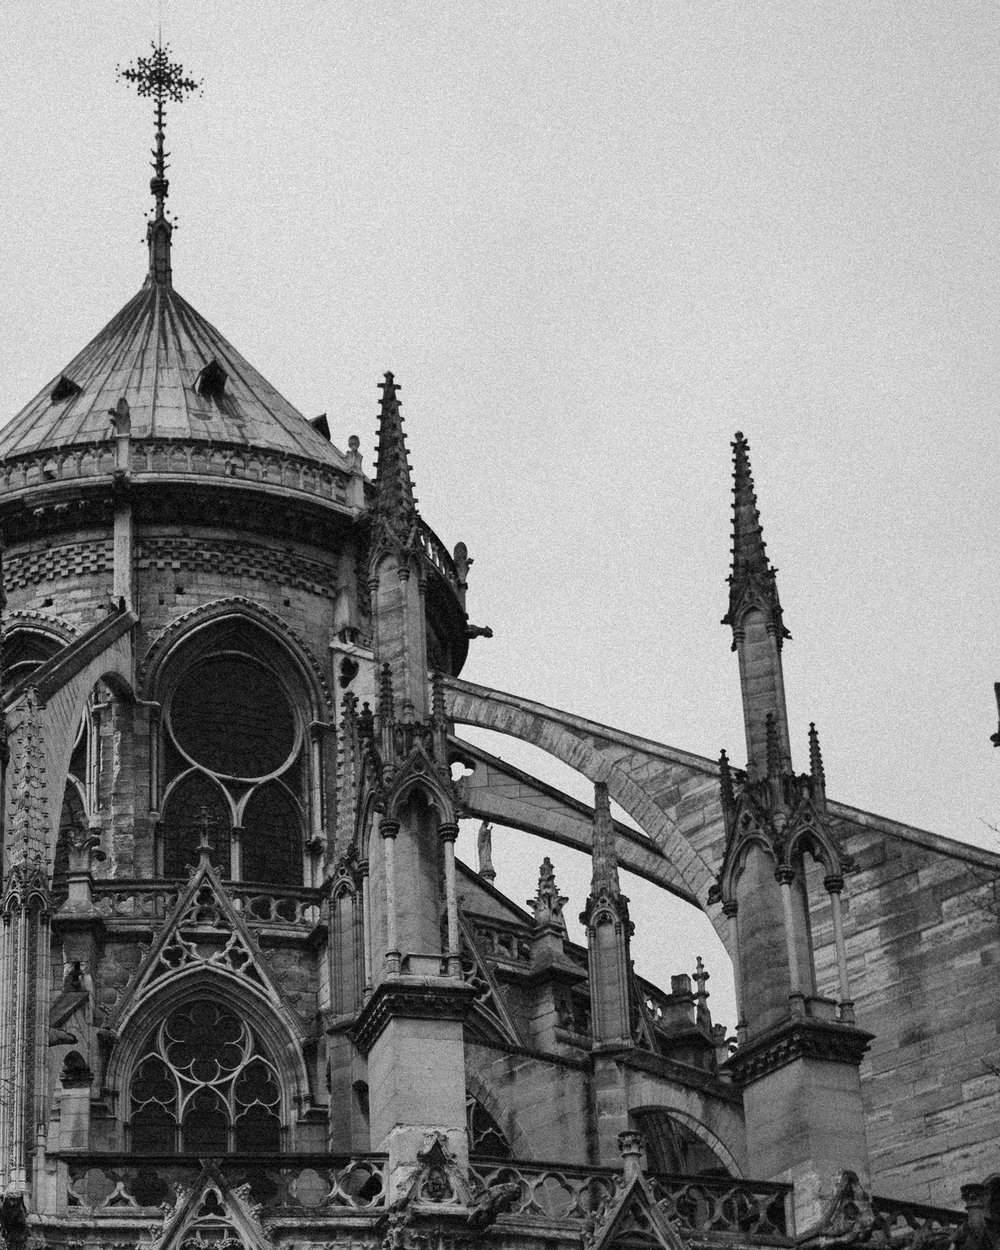 Notre Dame is famed as a prime example of classic gothic architecture. Here you can see the flying buttresses and gargoyles that have inspired many writers and artists over its 850 year history.